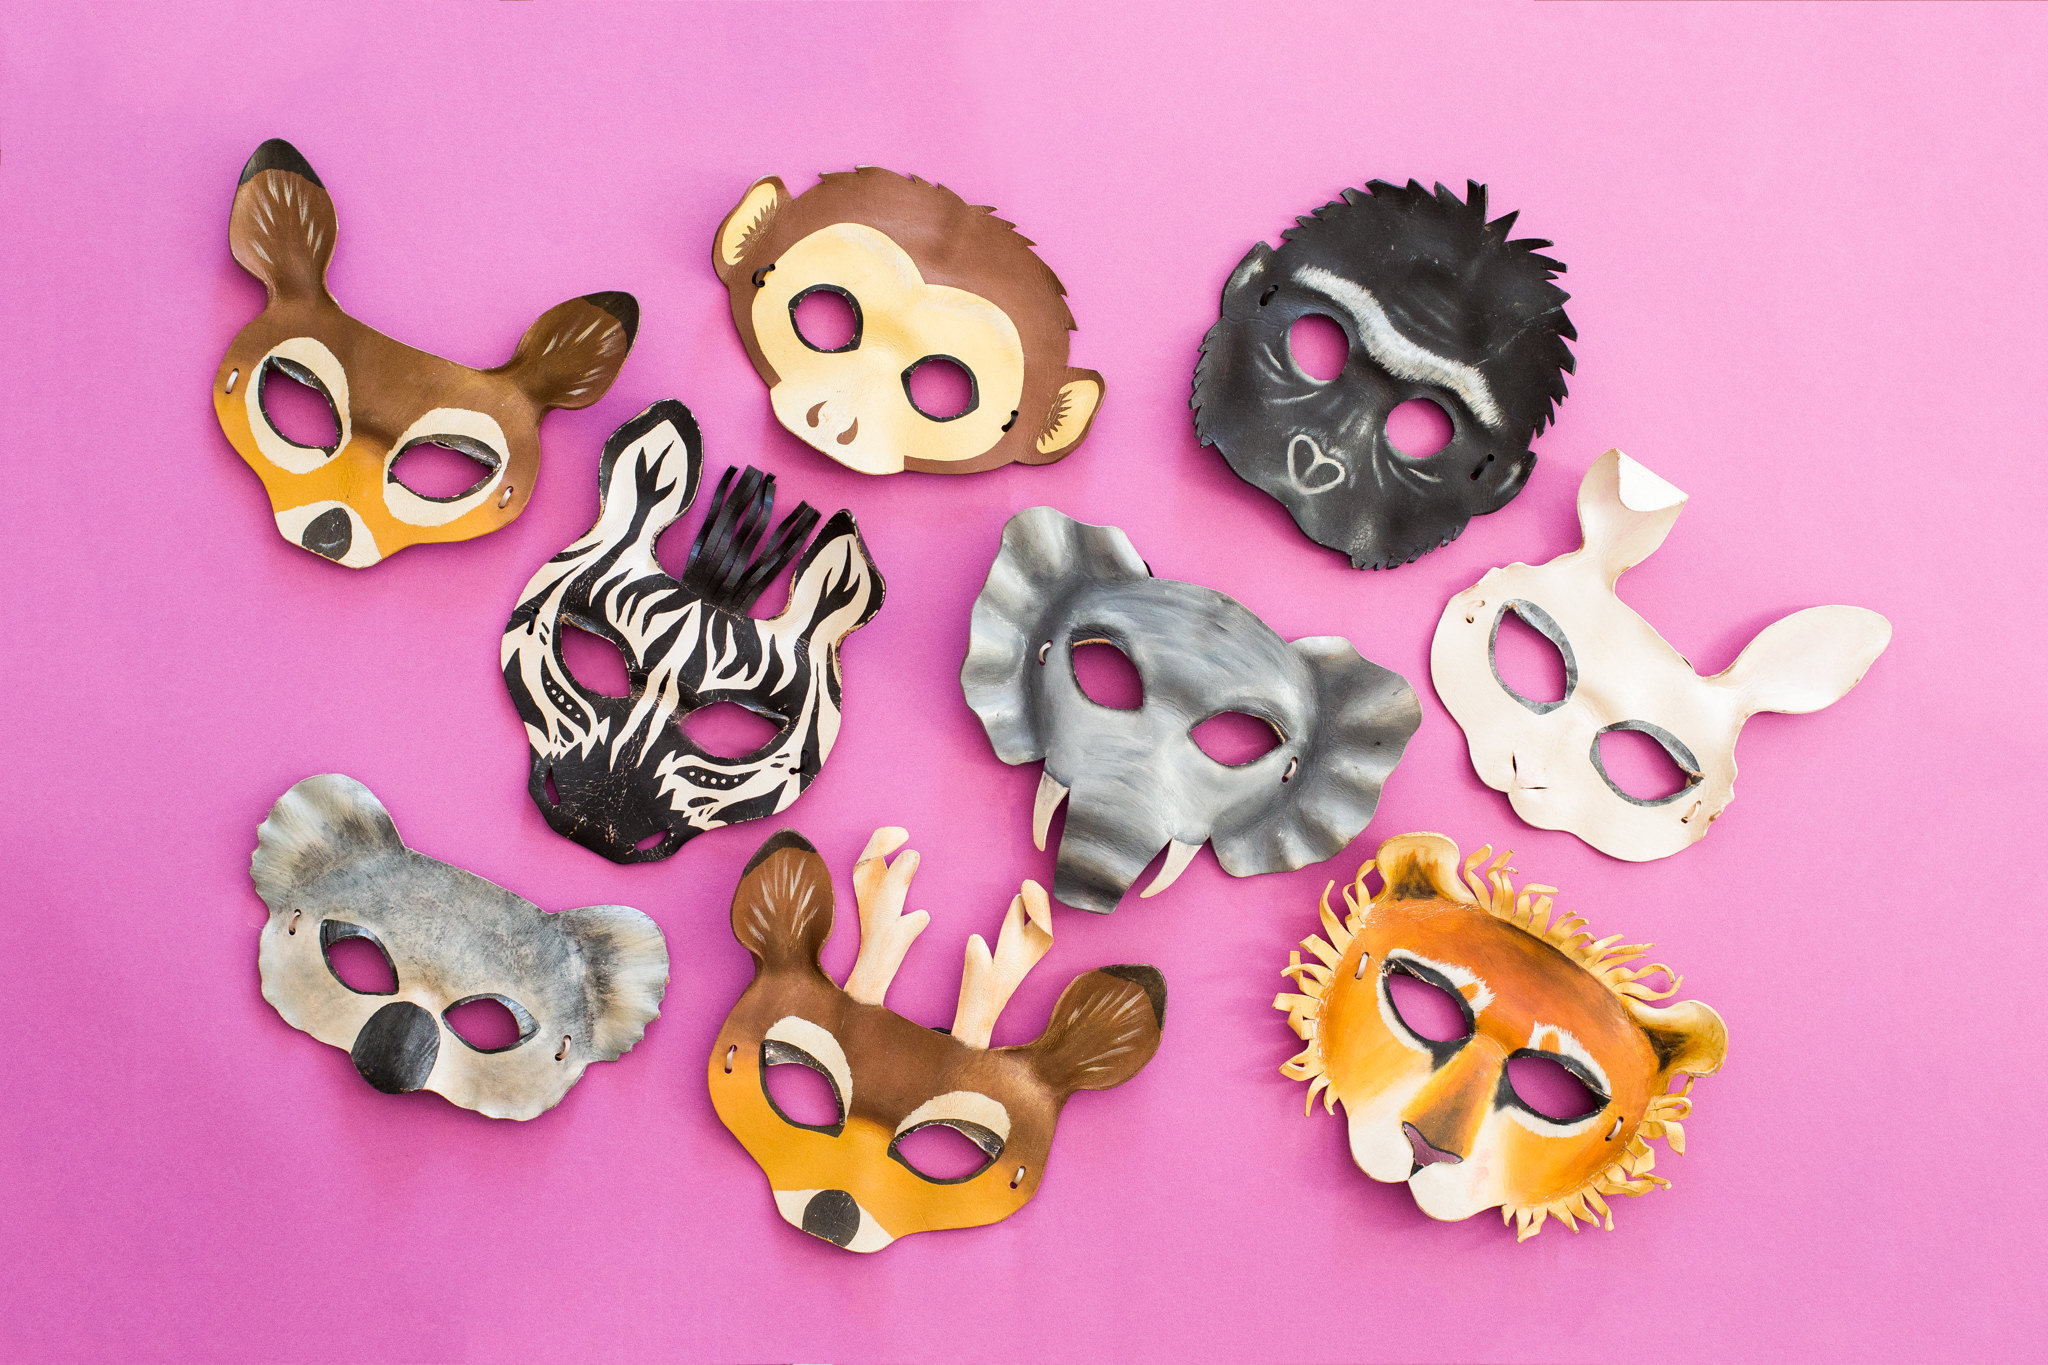 LEATHER ANIMAL MASK PROP KIT - Hands down our favourite prop kits as these amazingly crafted leather animal masks mould perfectly to your face, look great and leave enough of your hair, eyes & face to make your animal uniquely yours :)*Subject to availability